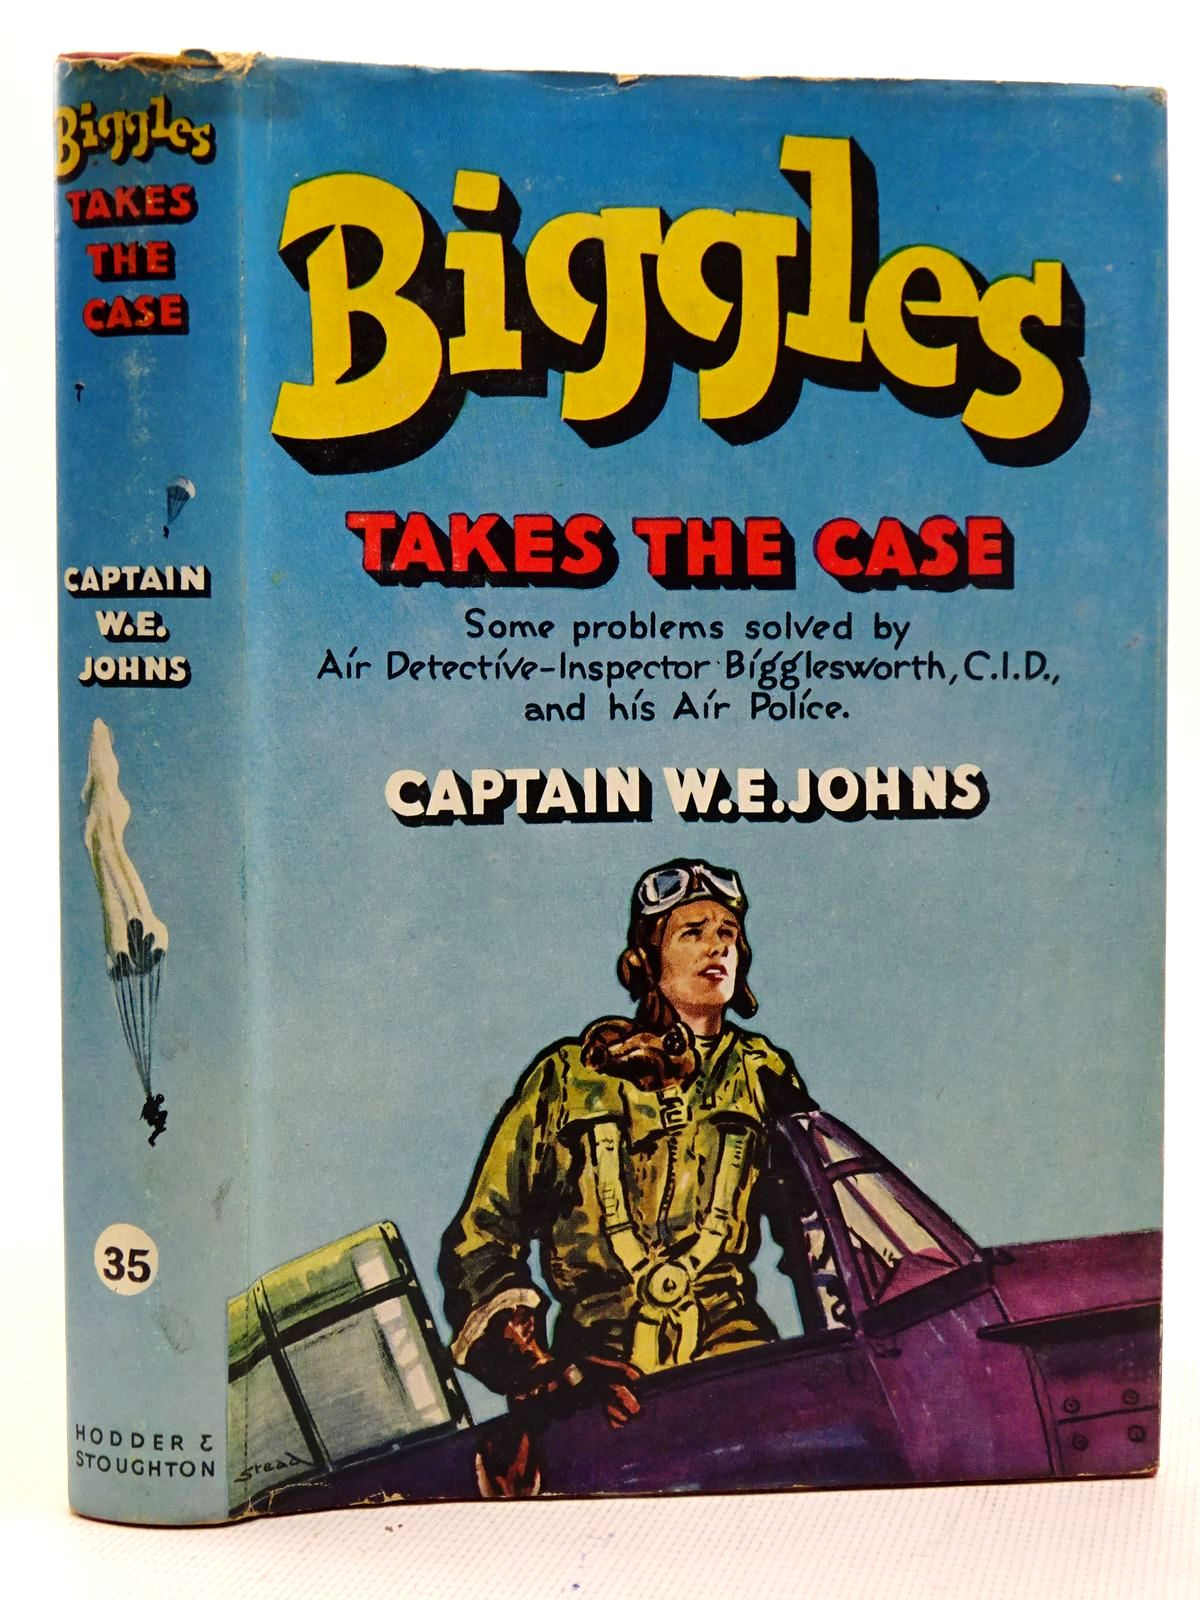 Photo of BIGGLES TAKES THE CASE written by Johns, W.E. illustrated by Stead, Leslie published by Hodder & Stoughton (STOCK CODE: 2126472)  for sale by Stella & Rose's Books